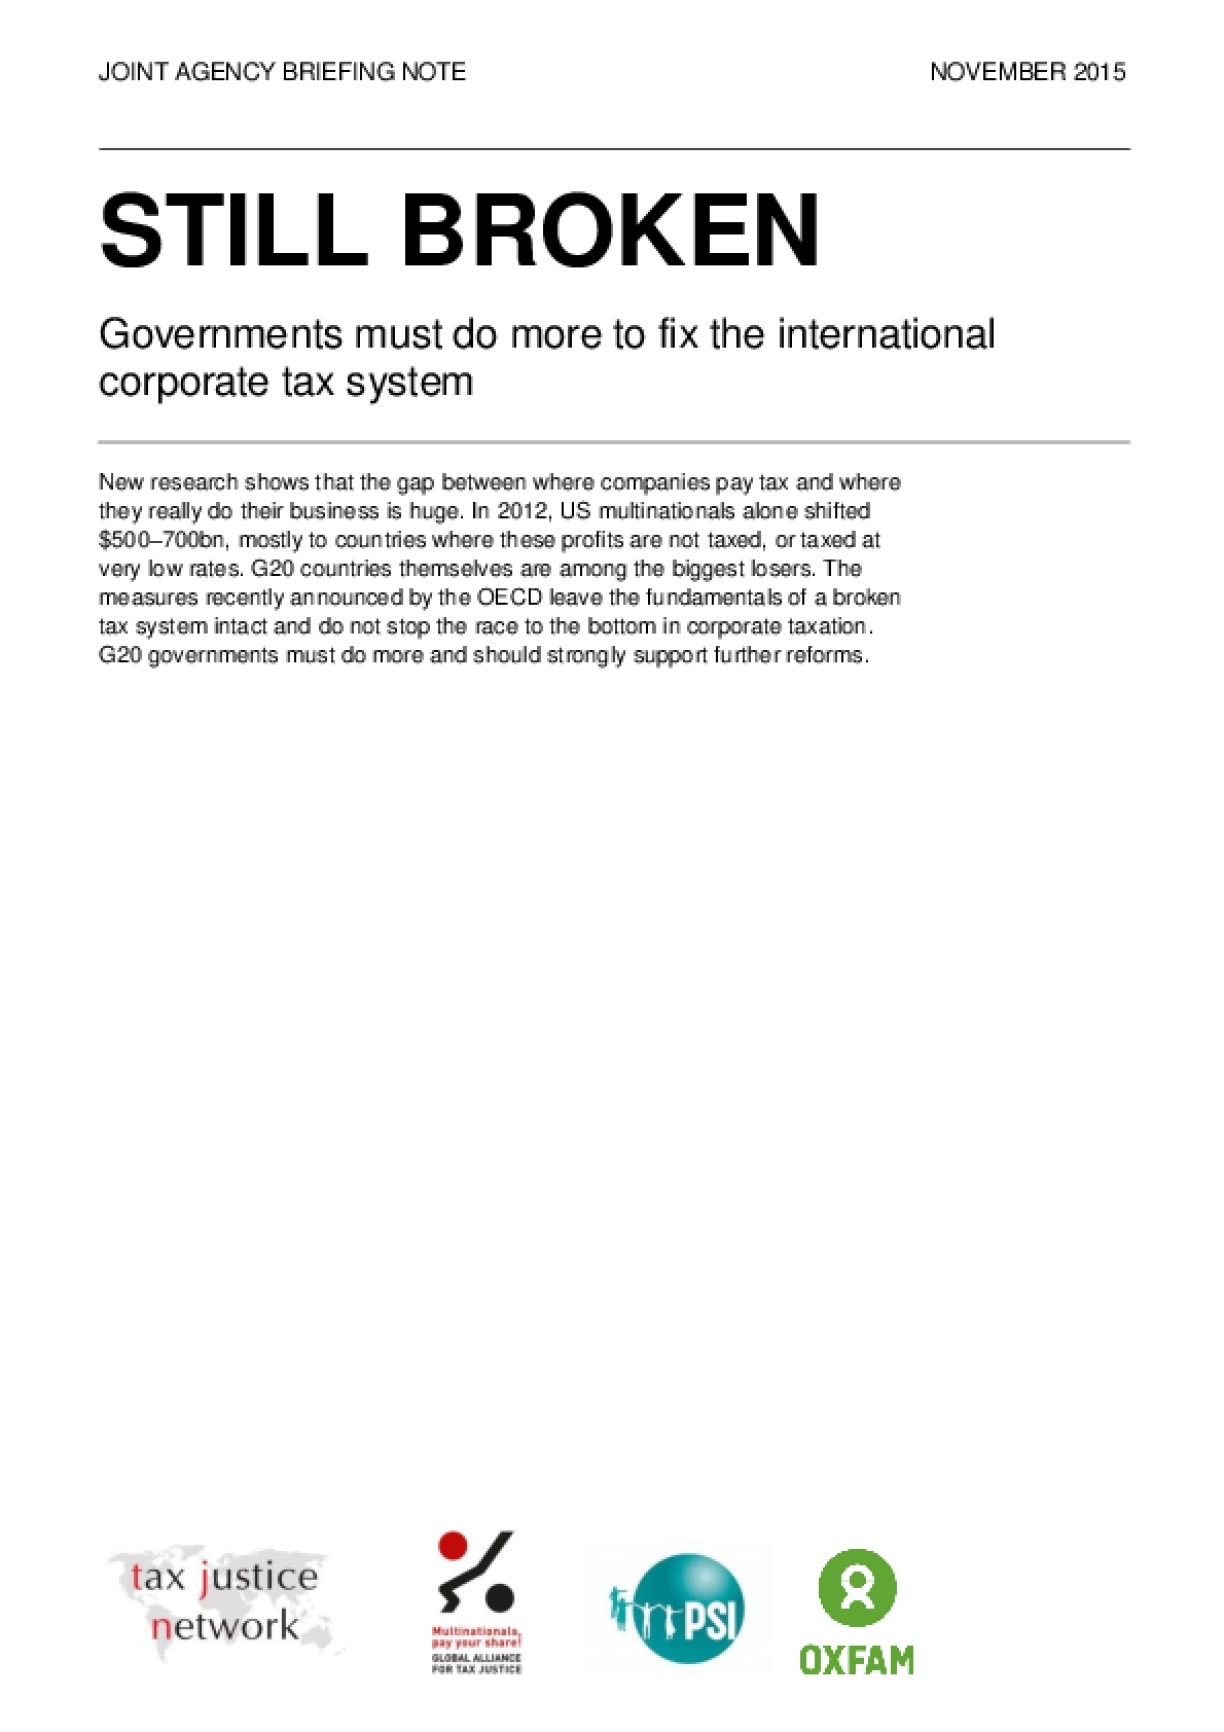 Still Broken: Governments Must Do More to Fix the International Corporate Tax System